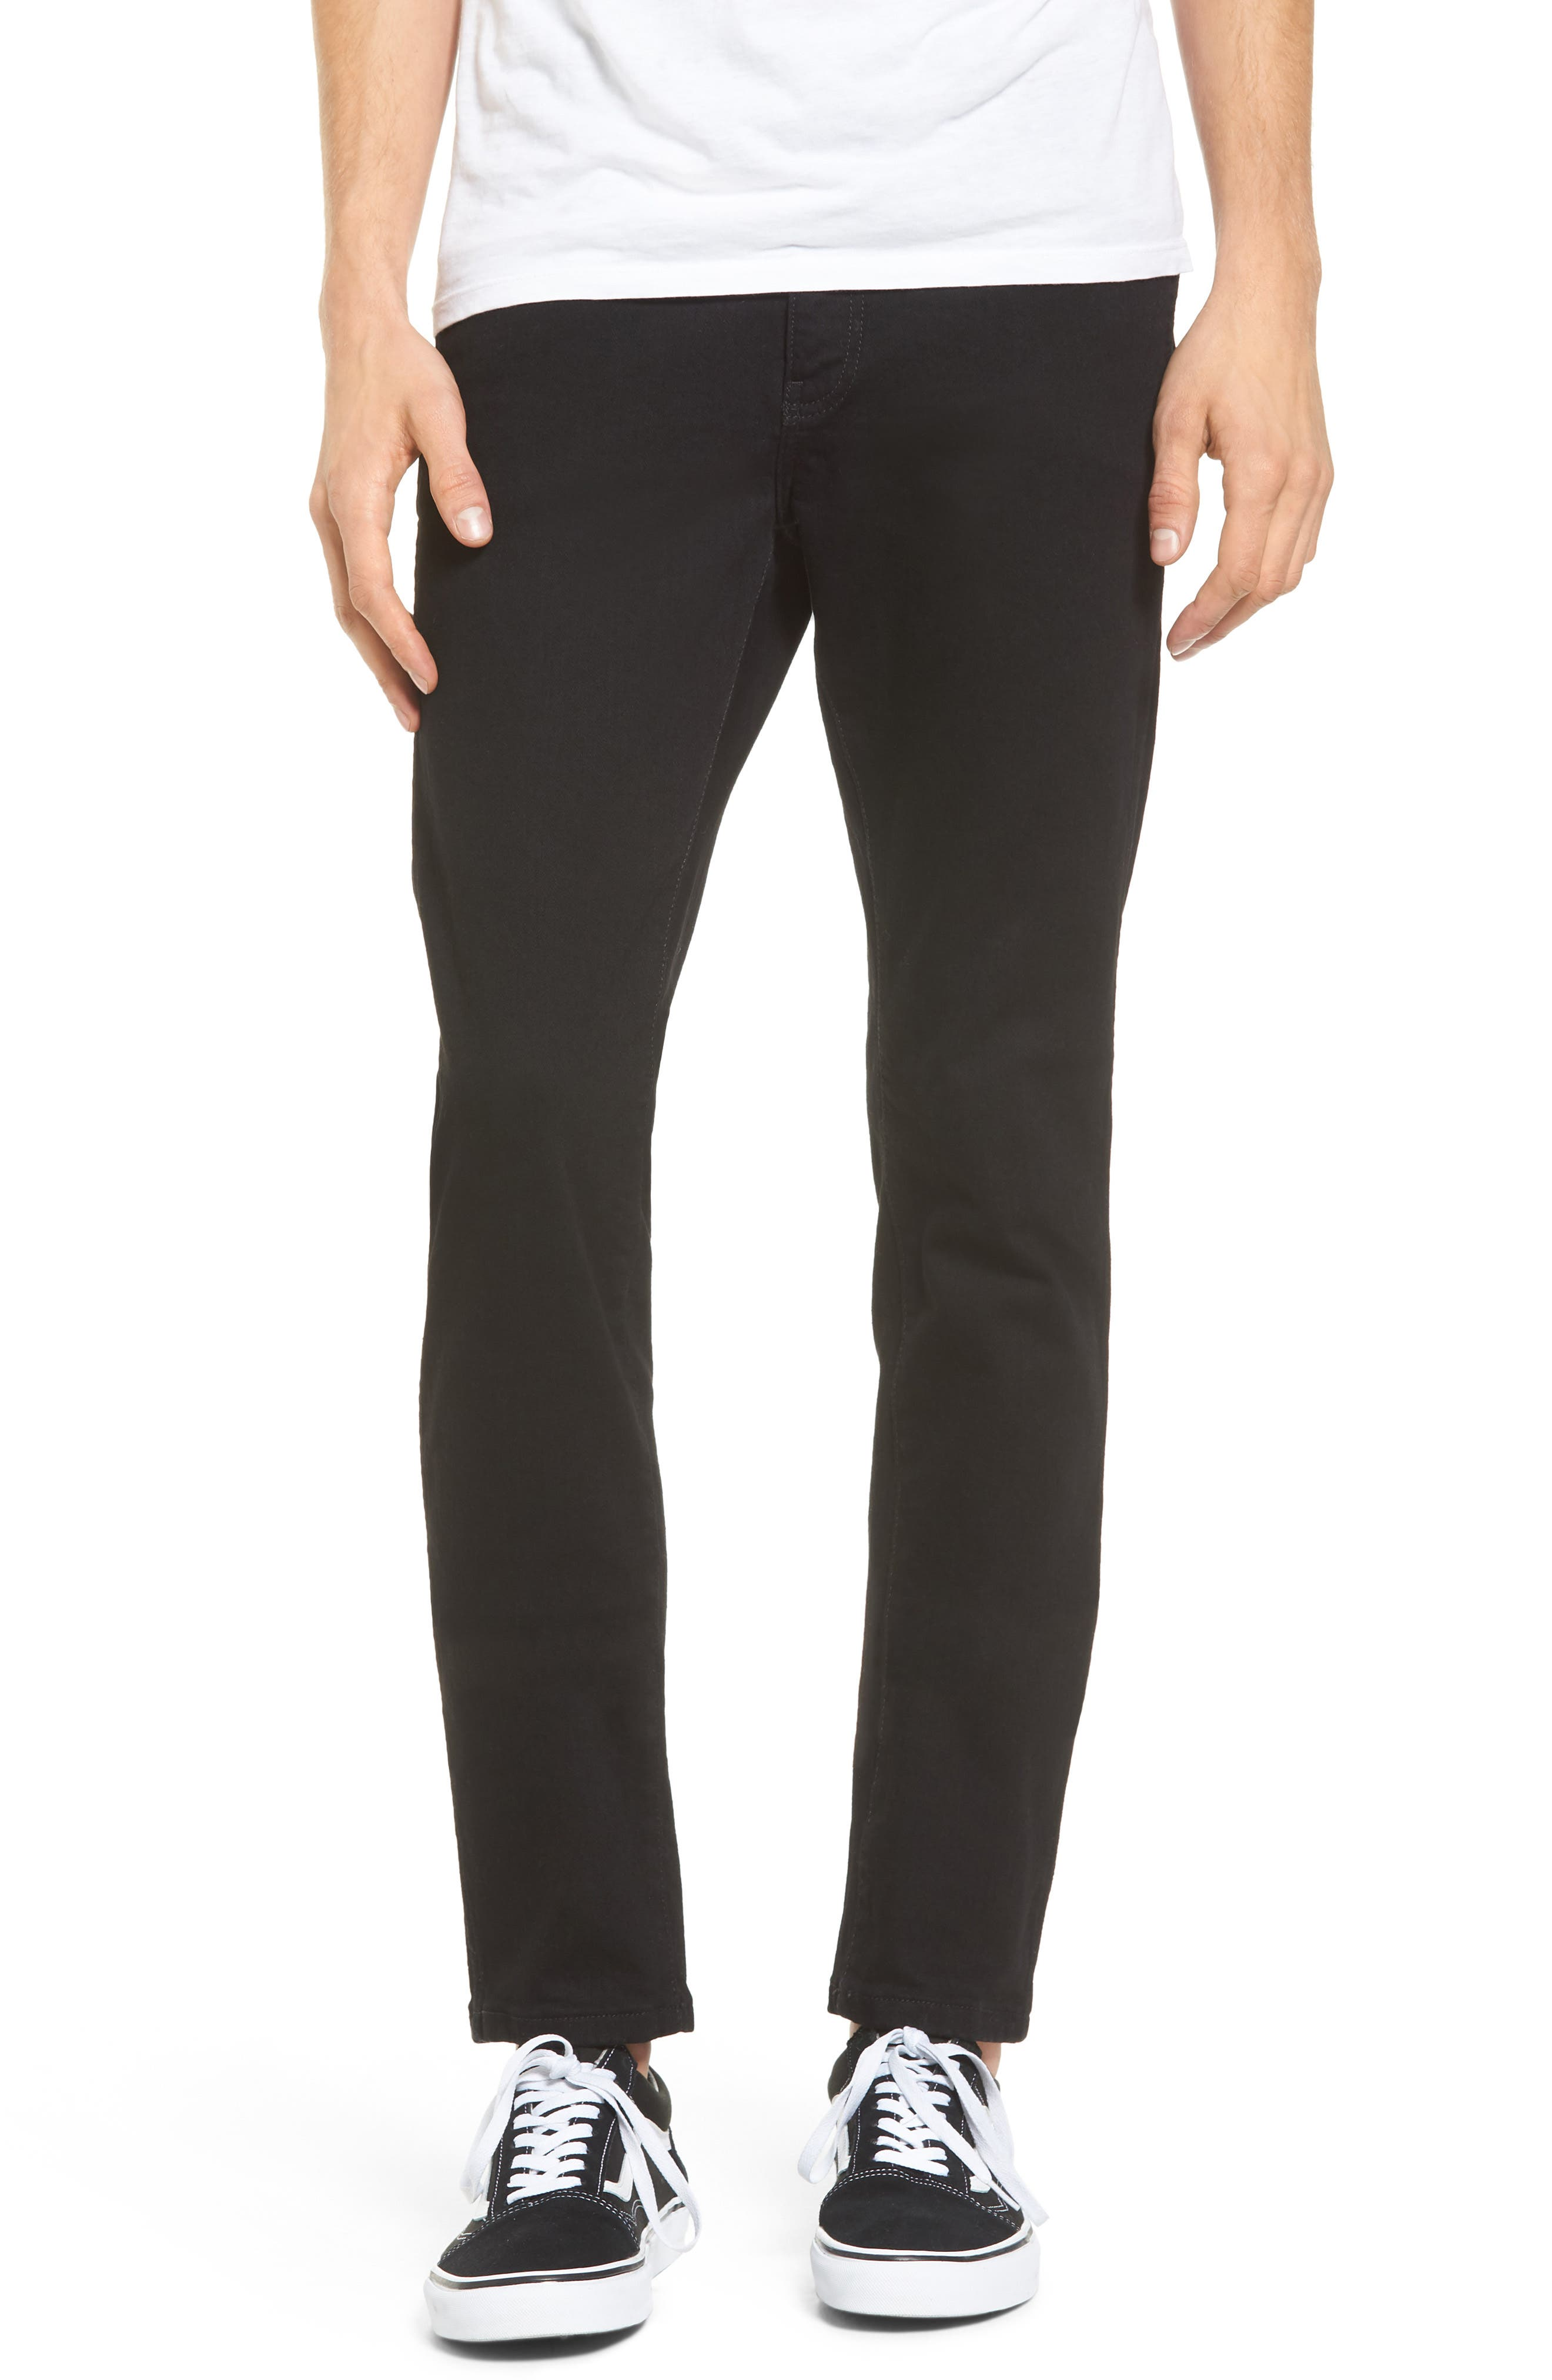 Snap Skinny Fit Jeans,                             Main thumbnail 1, color,                             ORGANIC BLACK